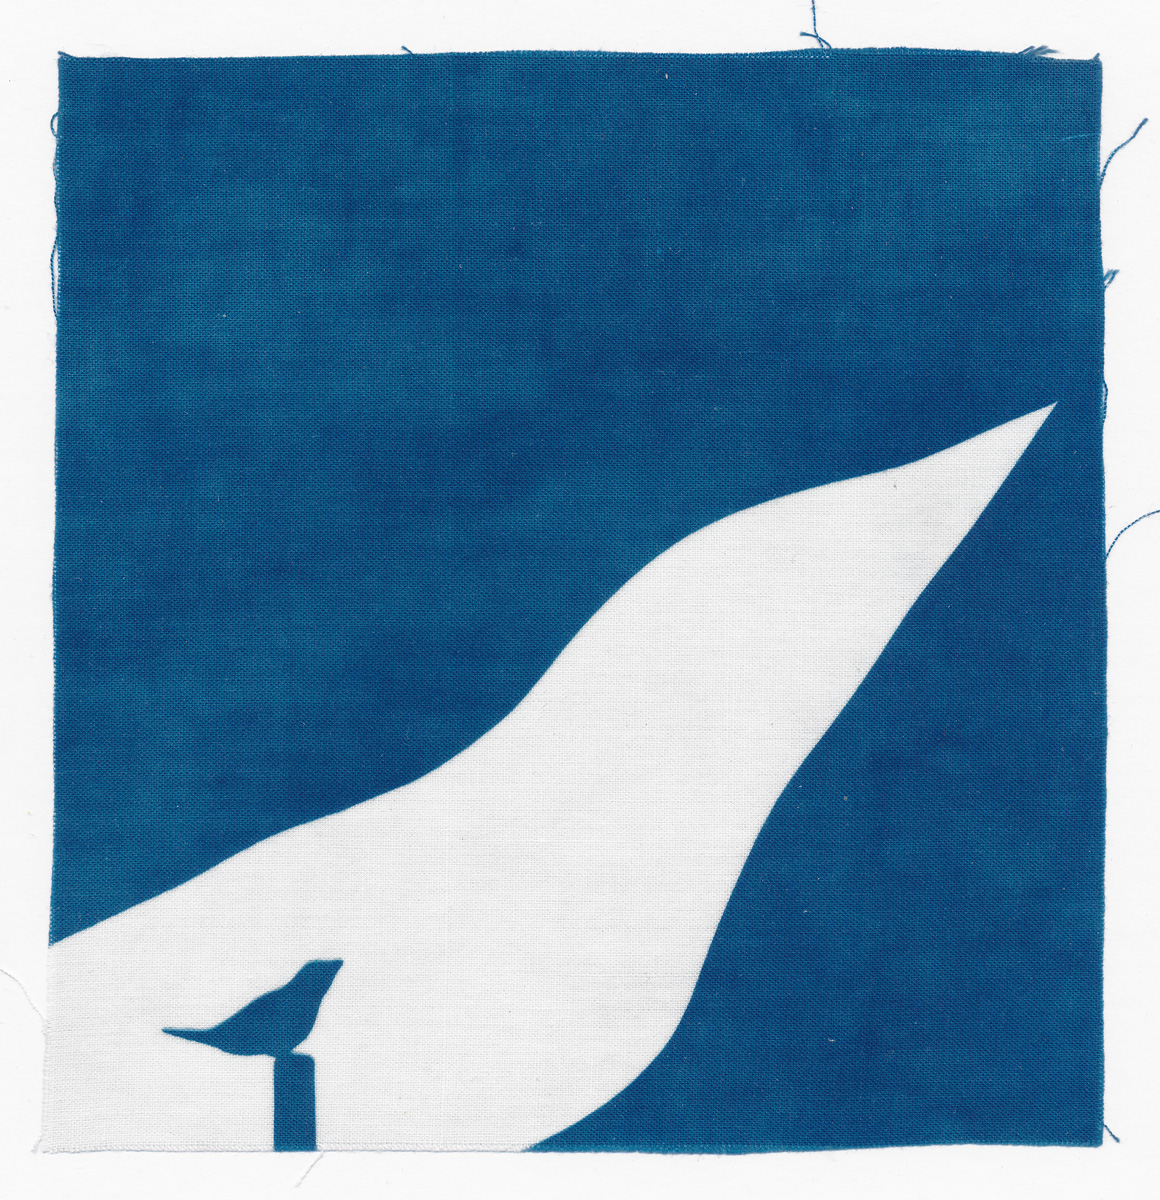 Chant du Rossignol, cyanotype on cotton fabric, Mike Tedder